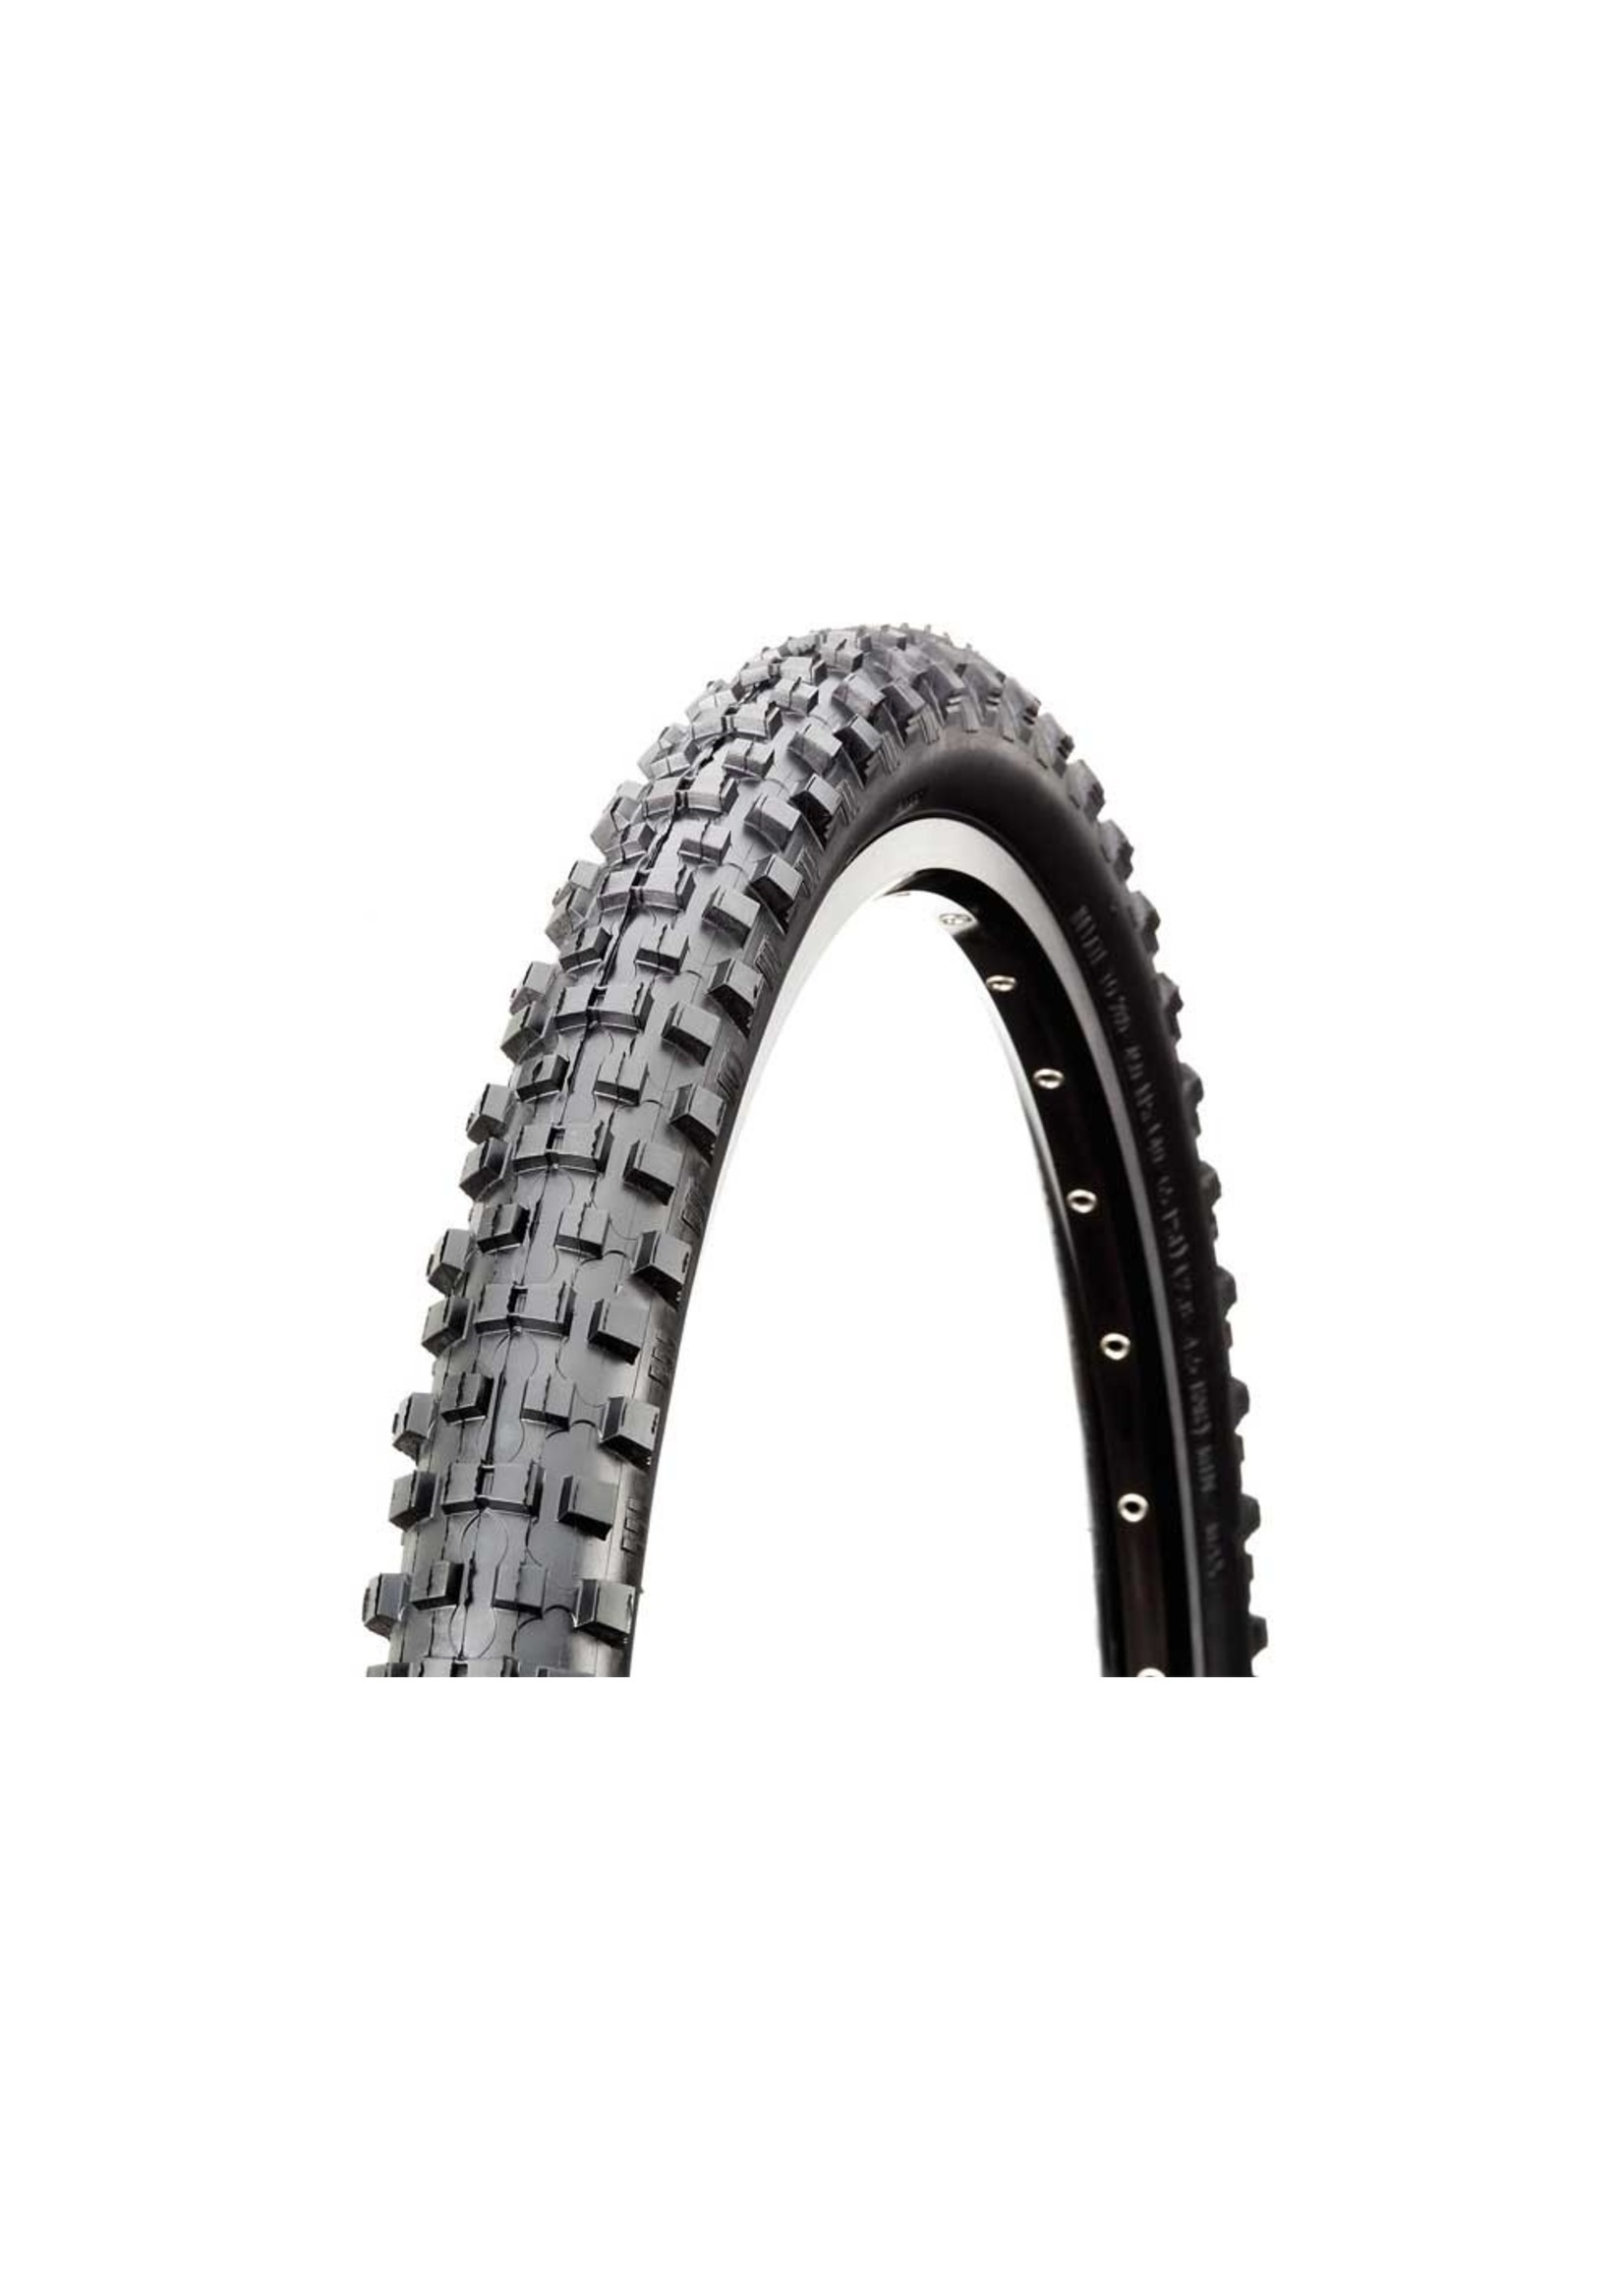 Raleigh EXTREME 26 x 2.35 Tyre